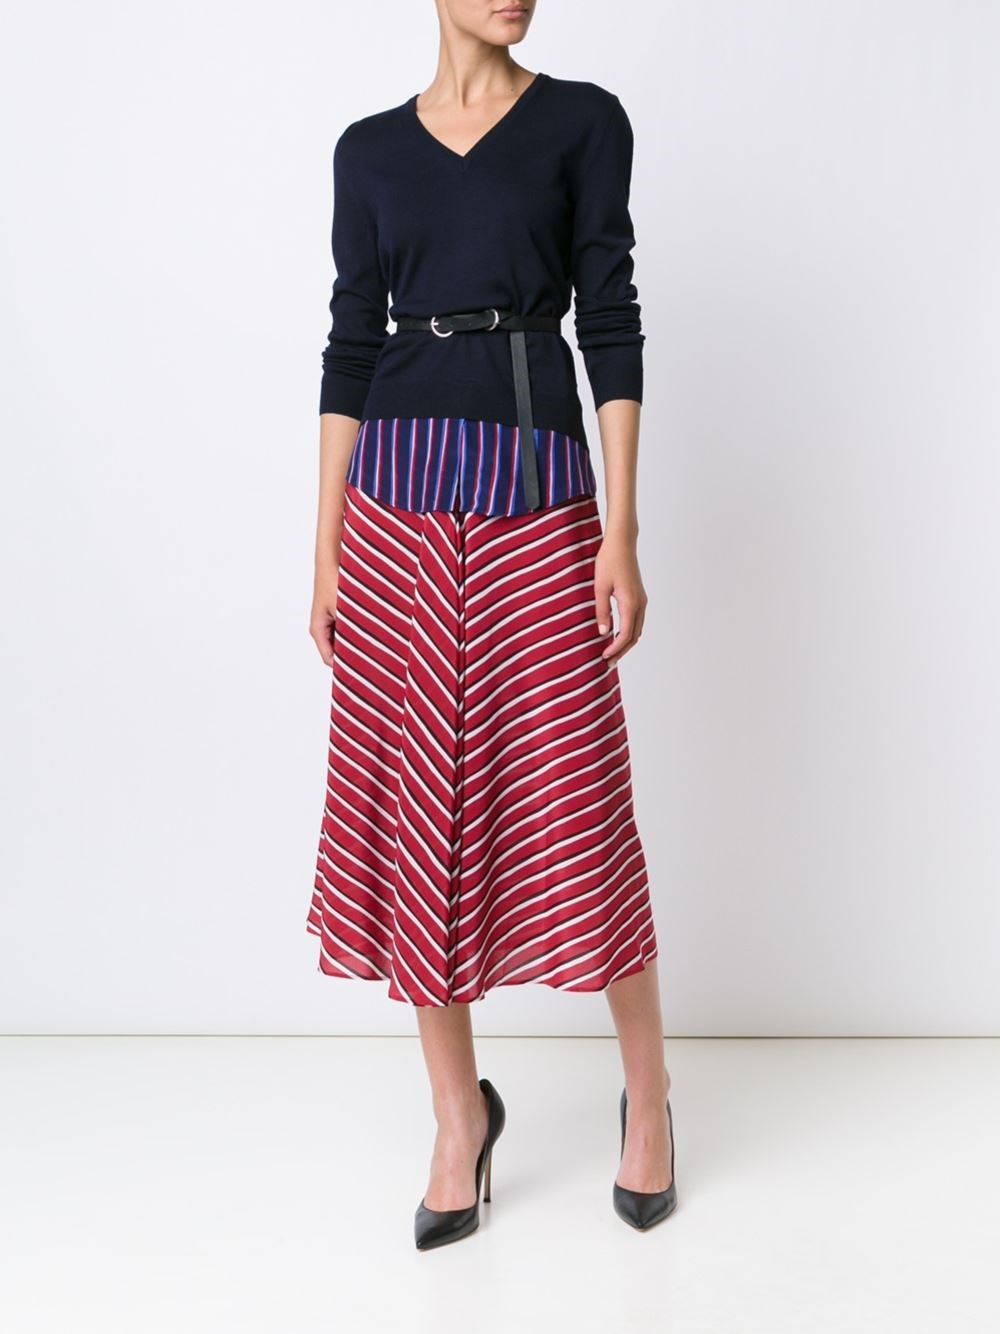 So the sweater may be a bit too hot for DC weather but we can't resist this patriotic skirt if you have a fancier engagement to attend! Altuzarra skirt, $1,395, husonline.com (Image: Courtesy Hu's Shoes)